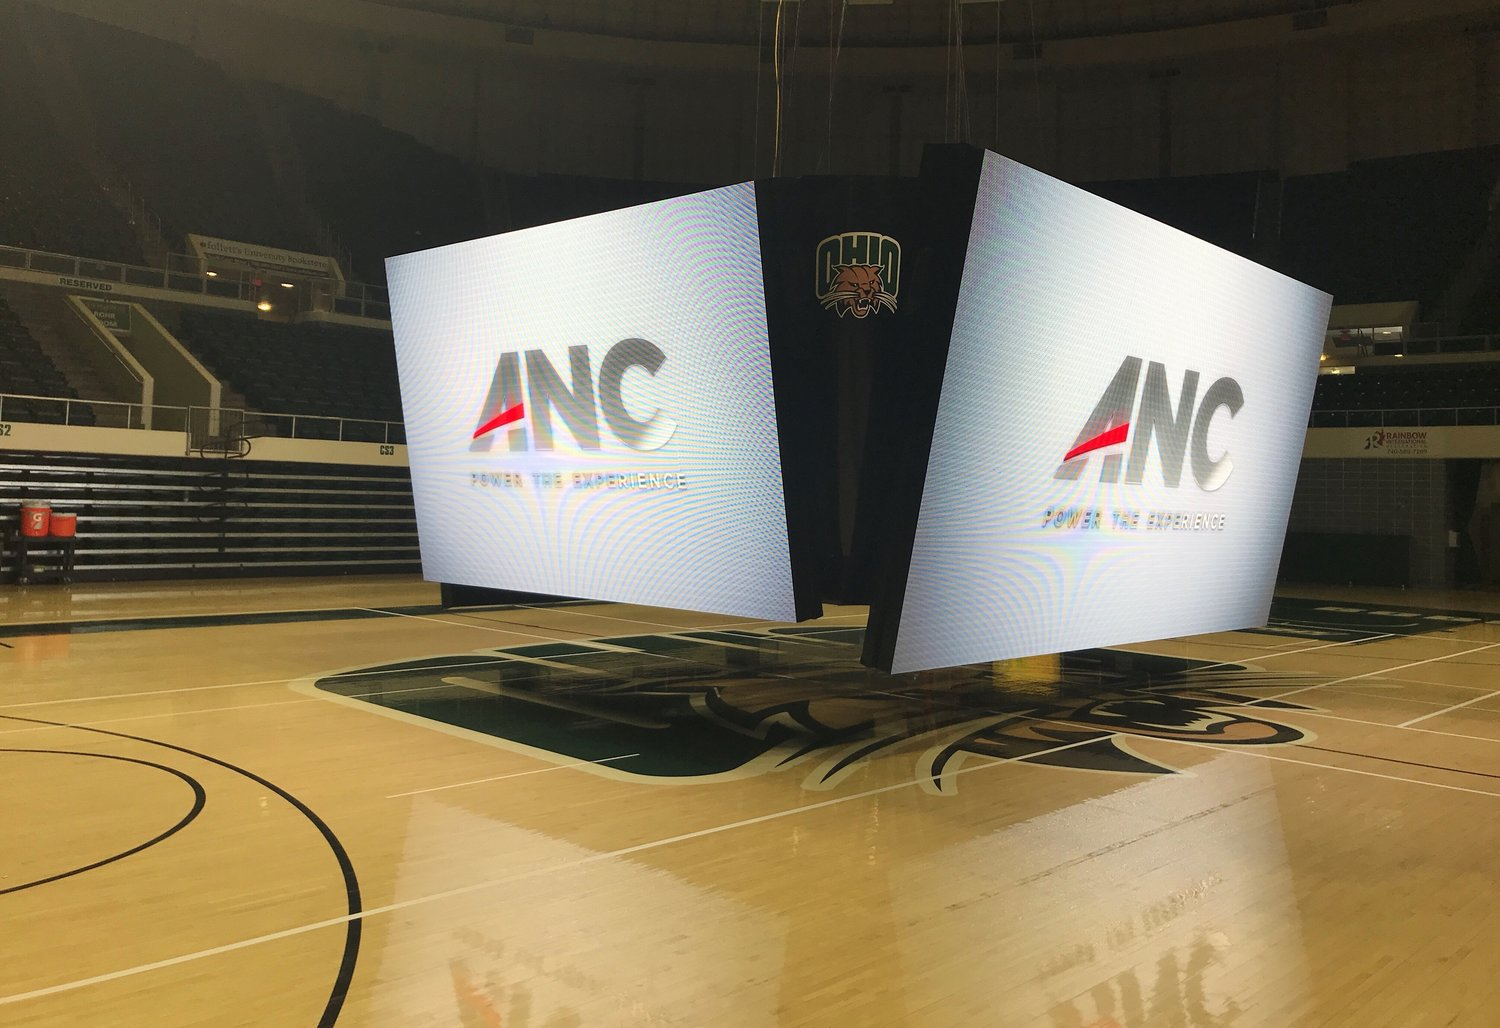 Ohio University partners with ANC on new center-hung display for Convocation Center